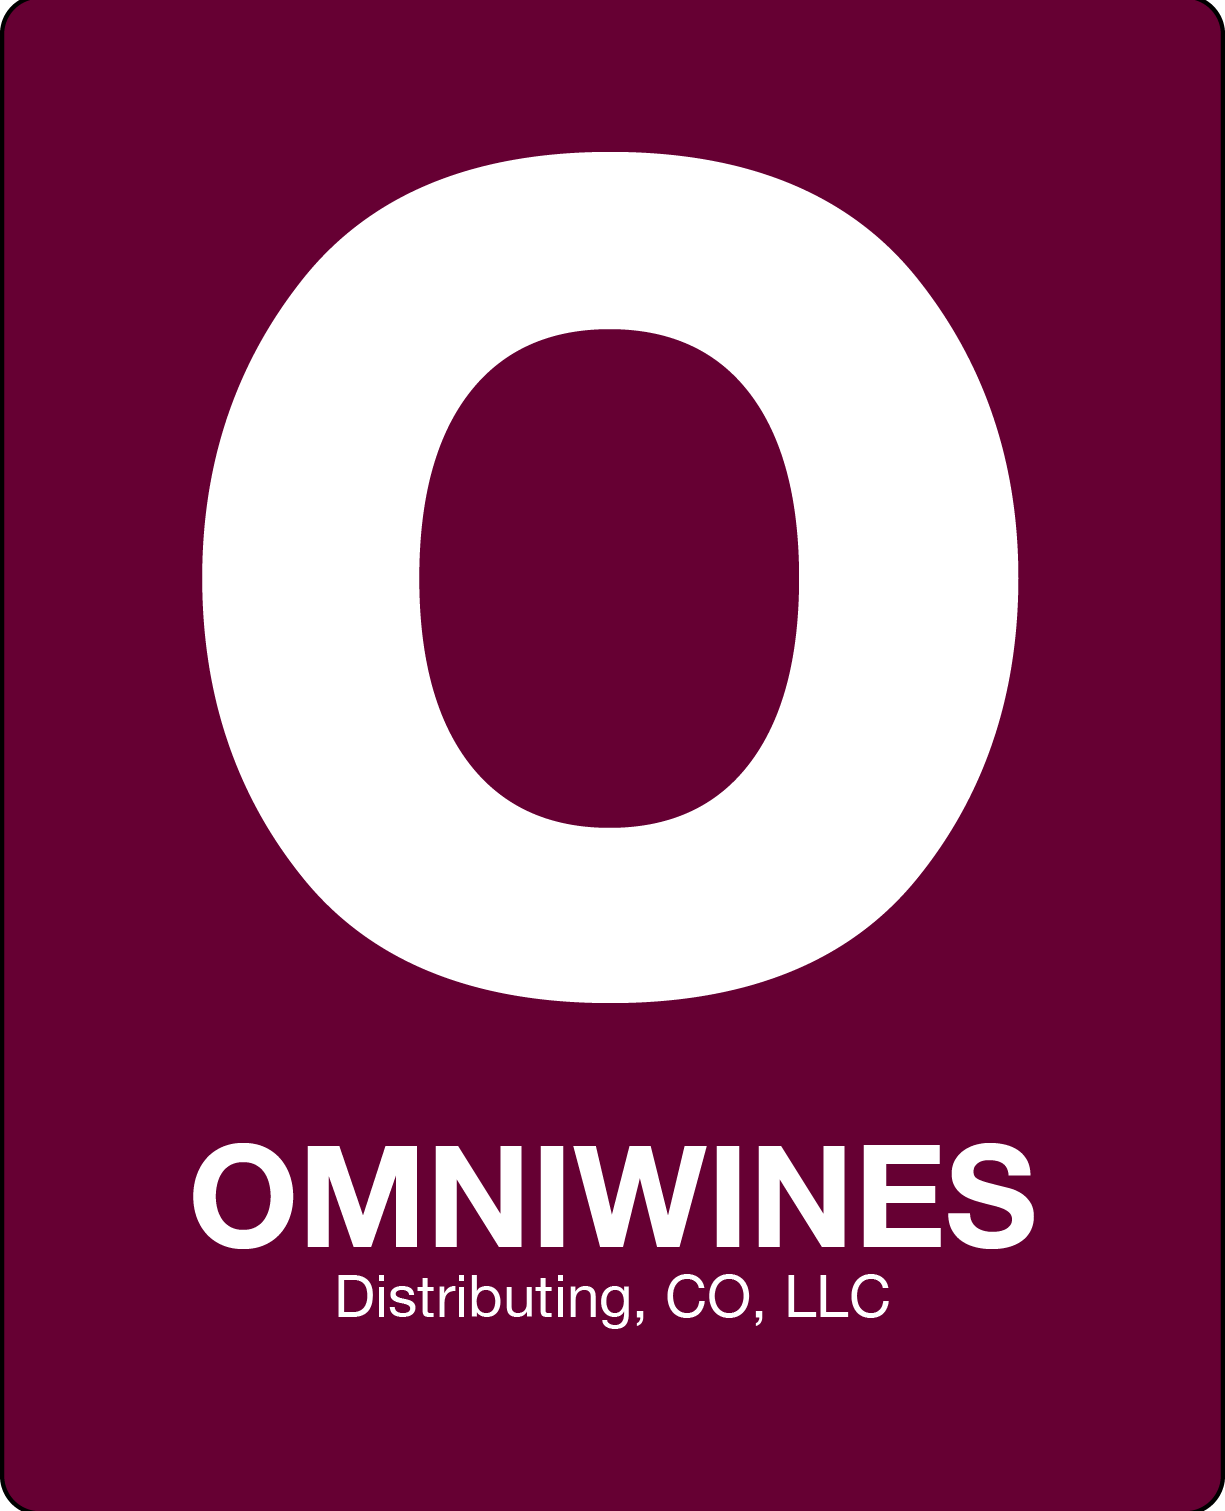 Omniwines Distributing Co